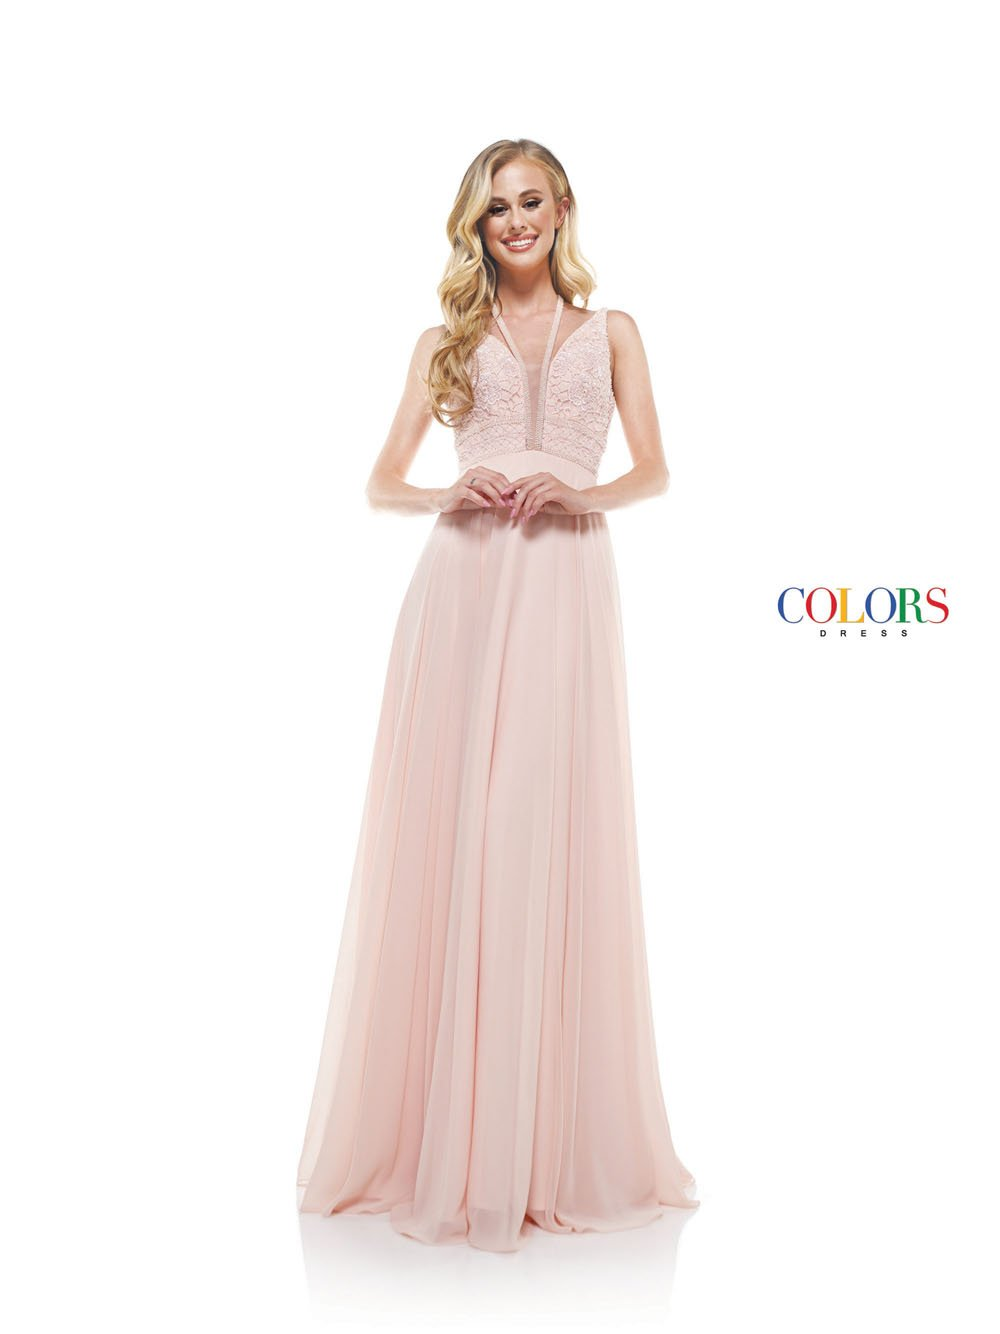 Colors Dress 2320 prom dress images.  Colors 2320 dresses are available in these colors: Blush, Off White, Yellow.